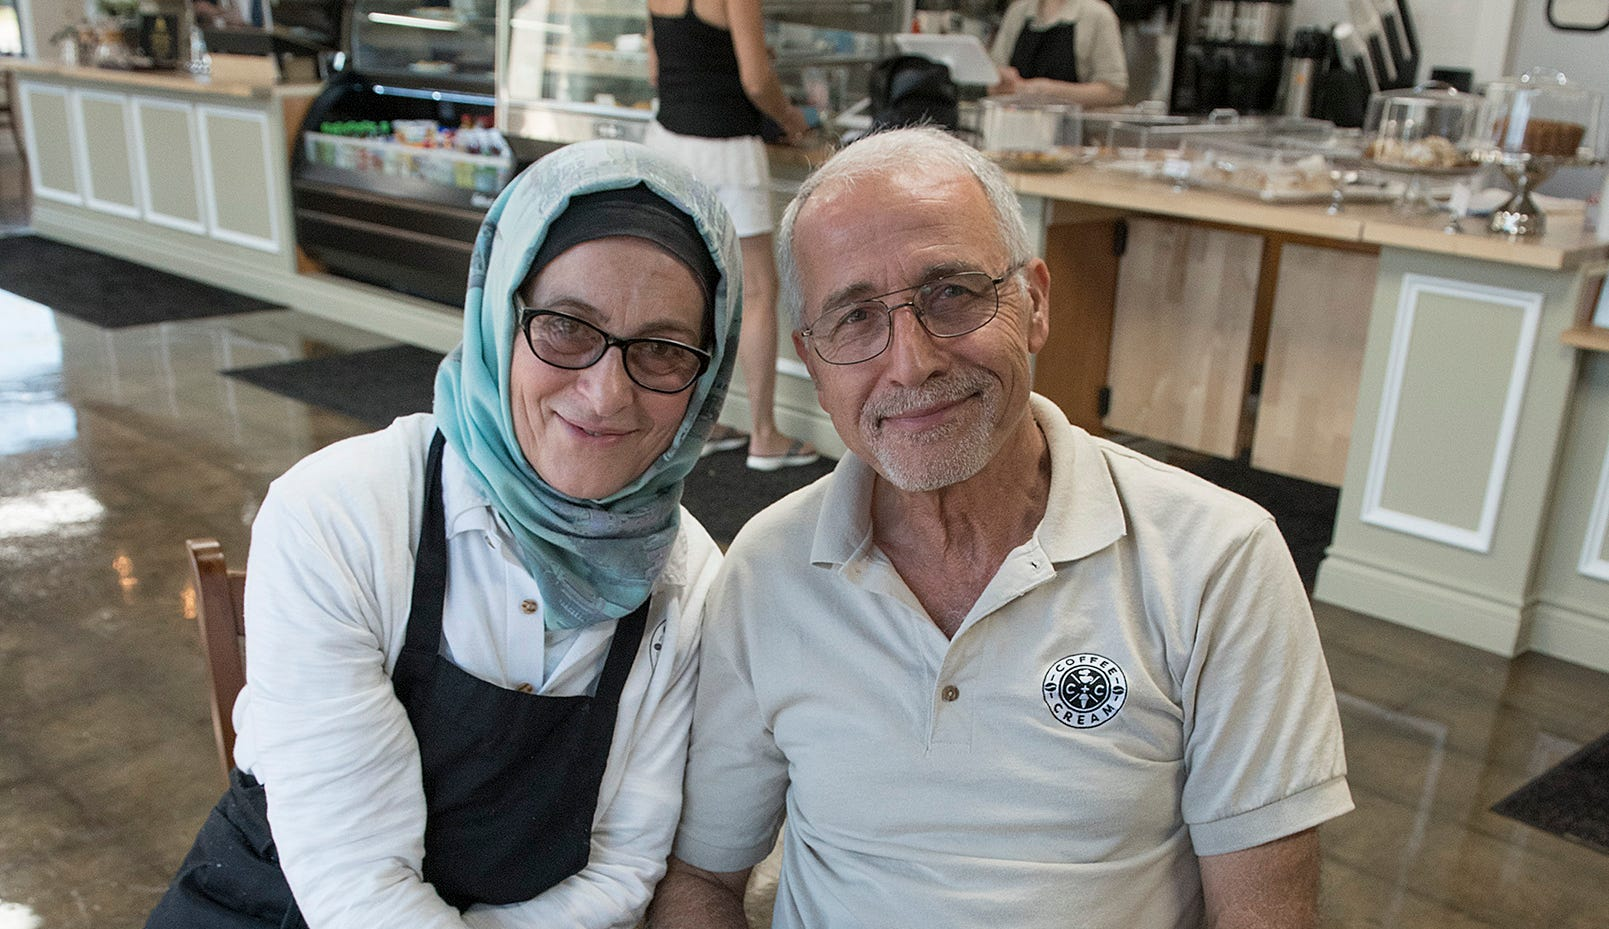 Emily Zahr and Anwar Zahr opened the shop in the late August. Some of the treats are baked in-house.